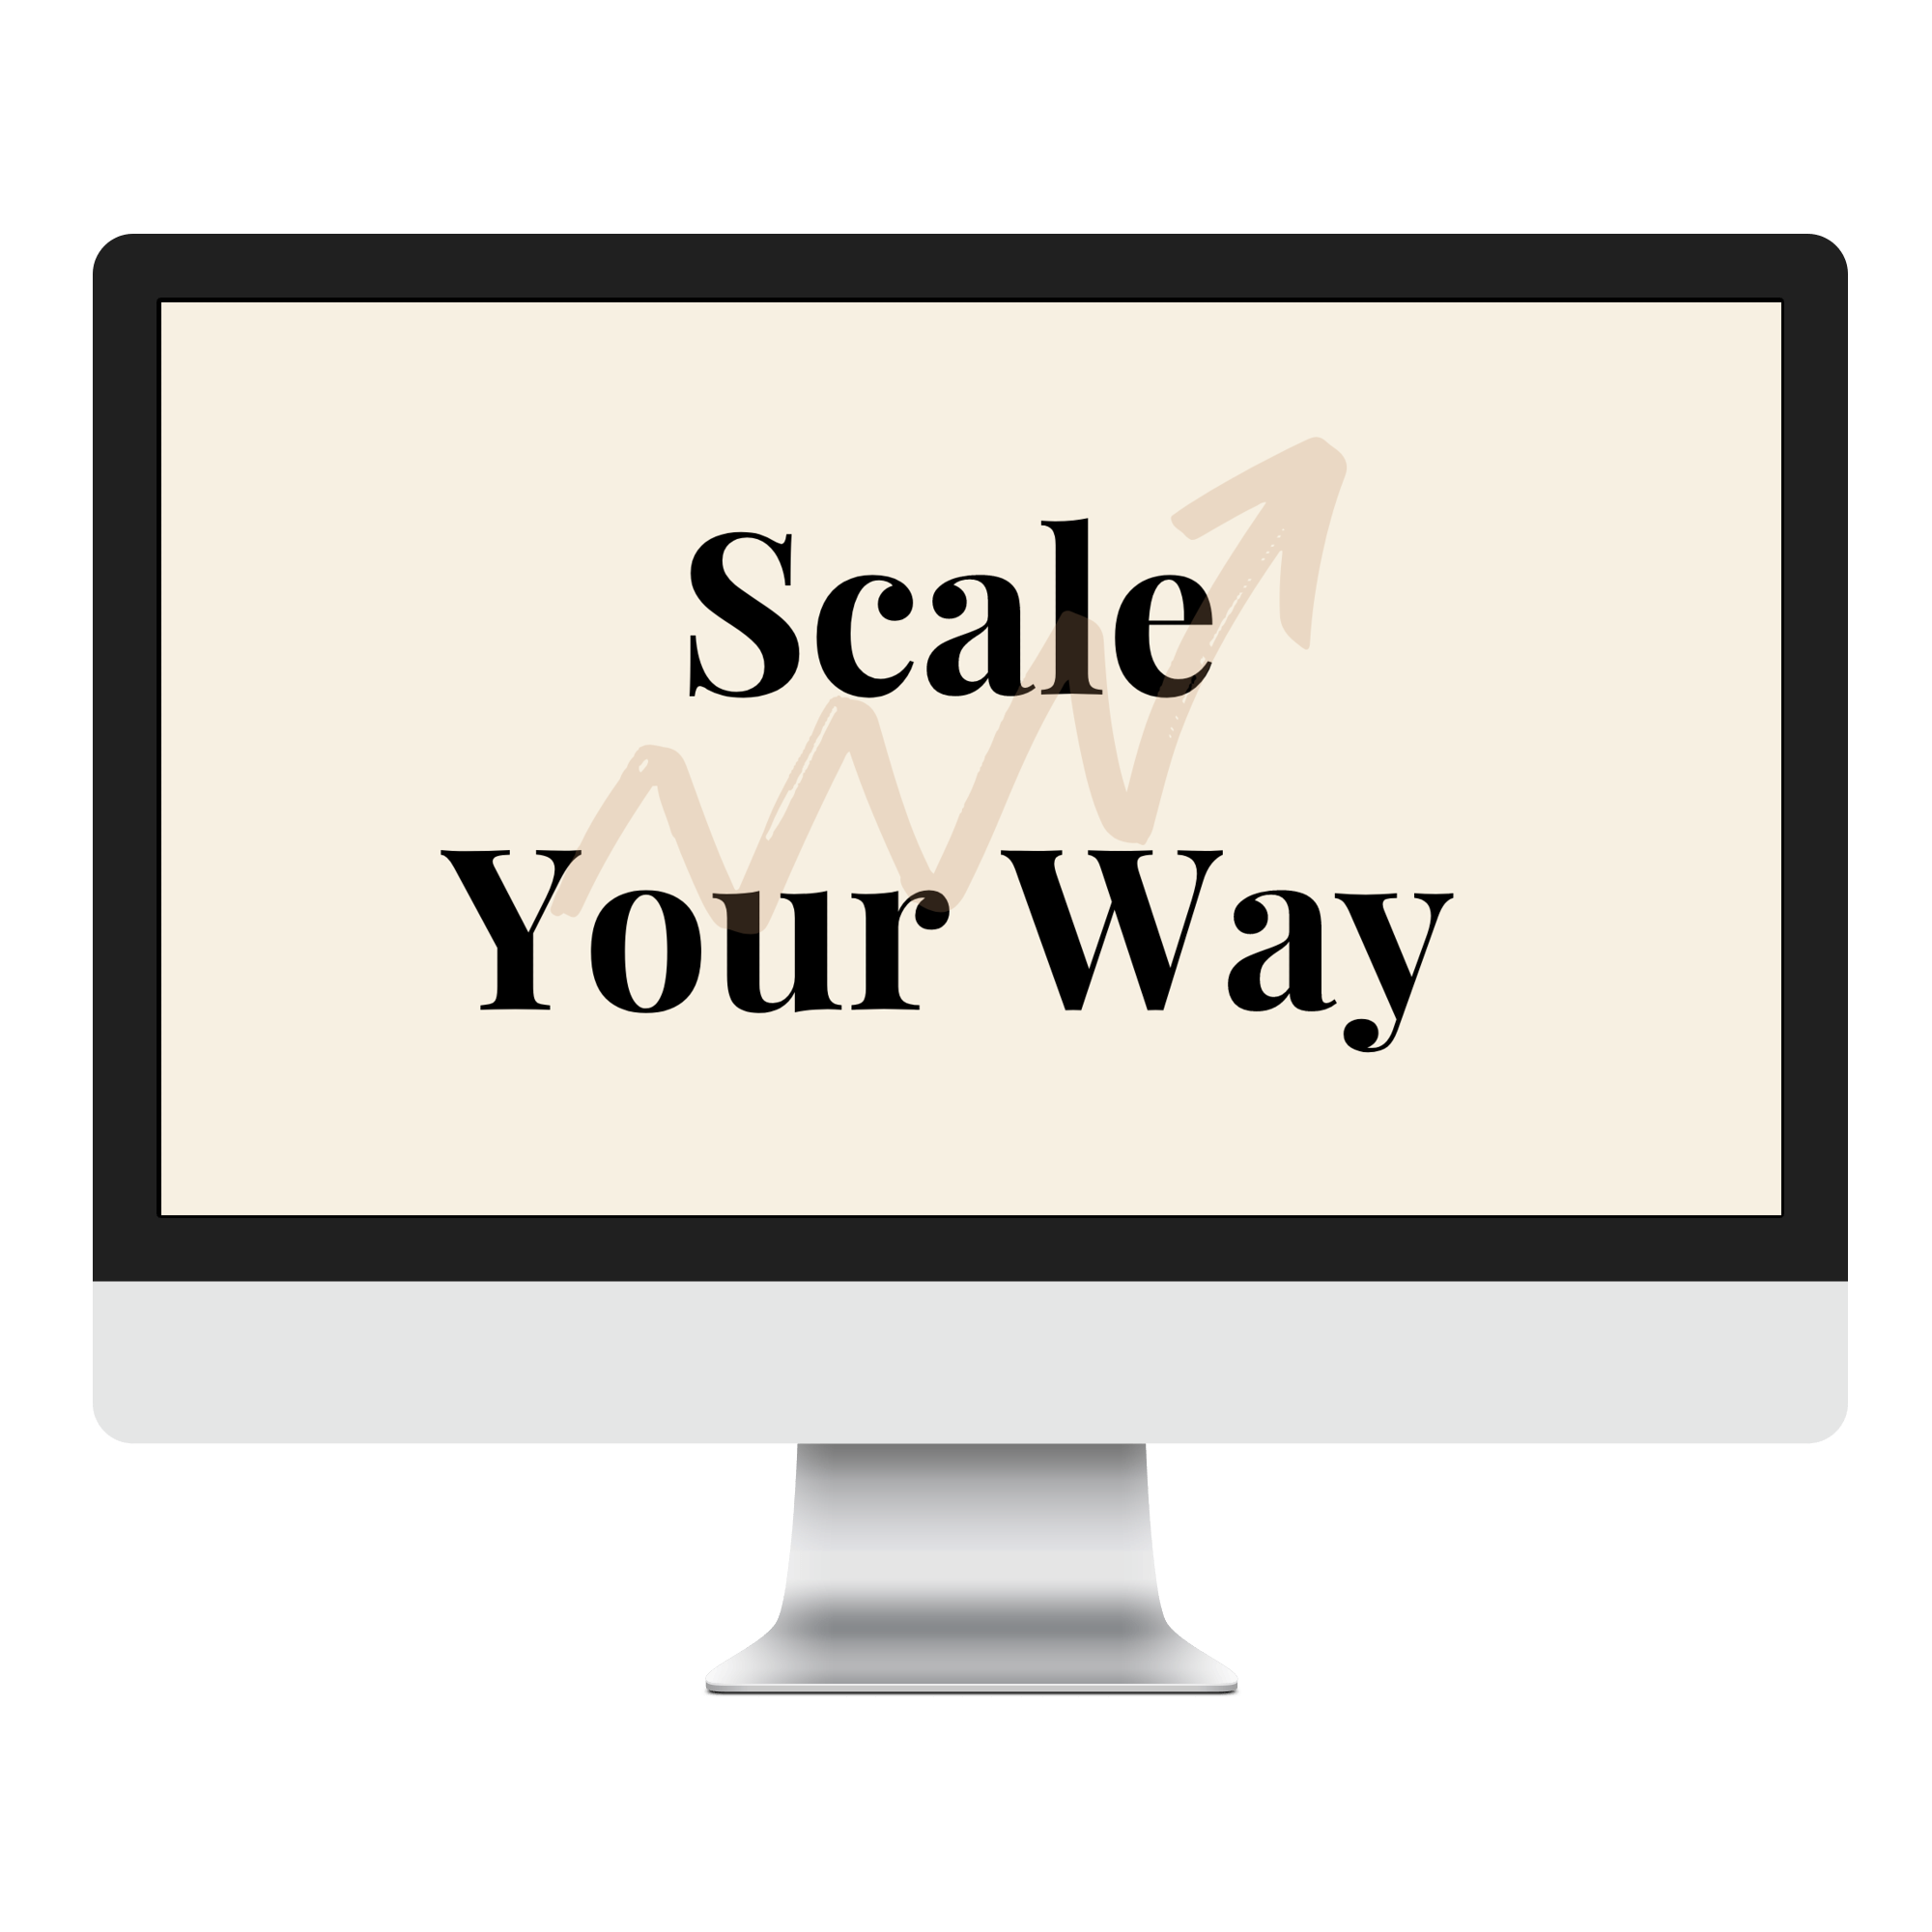 Scale_imac2013_front.png